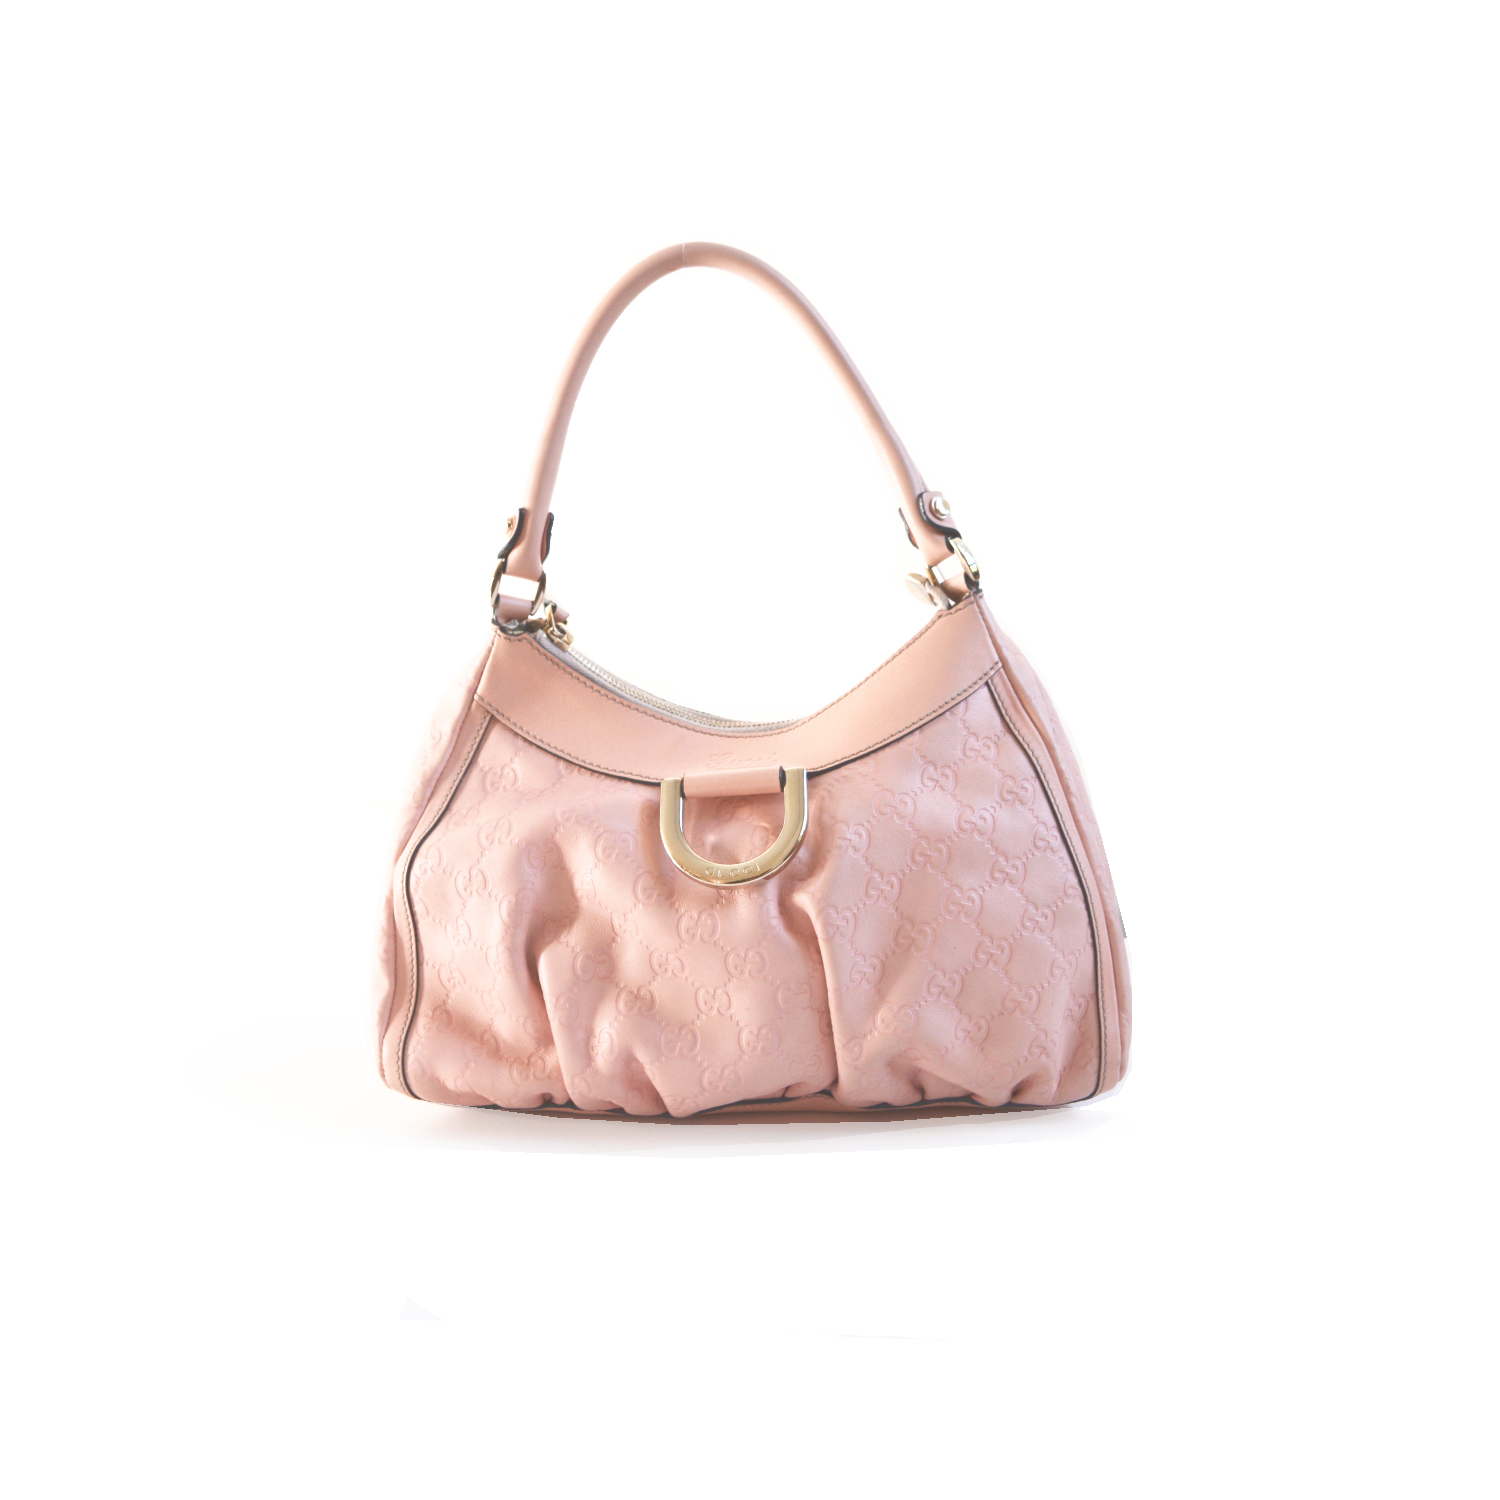 Vintage Gucci Monogram Leather Hobo Bag in Baby Pink | NITRYL